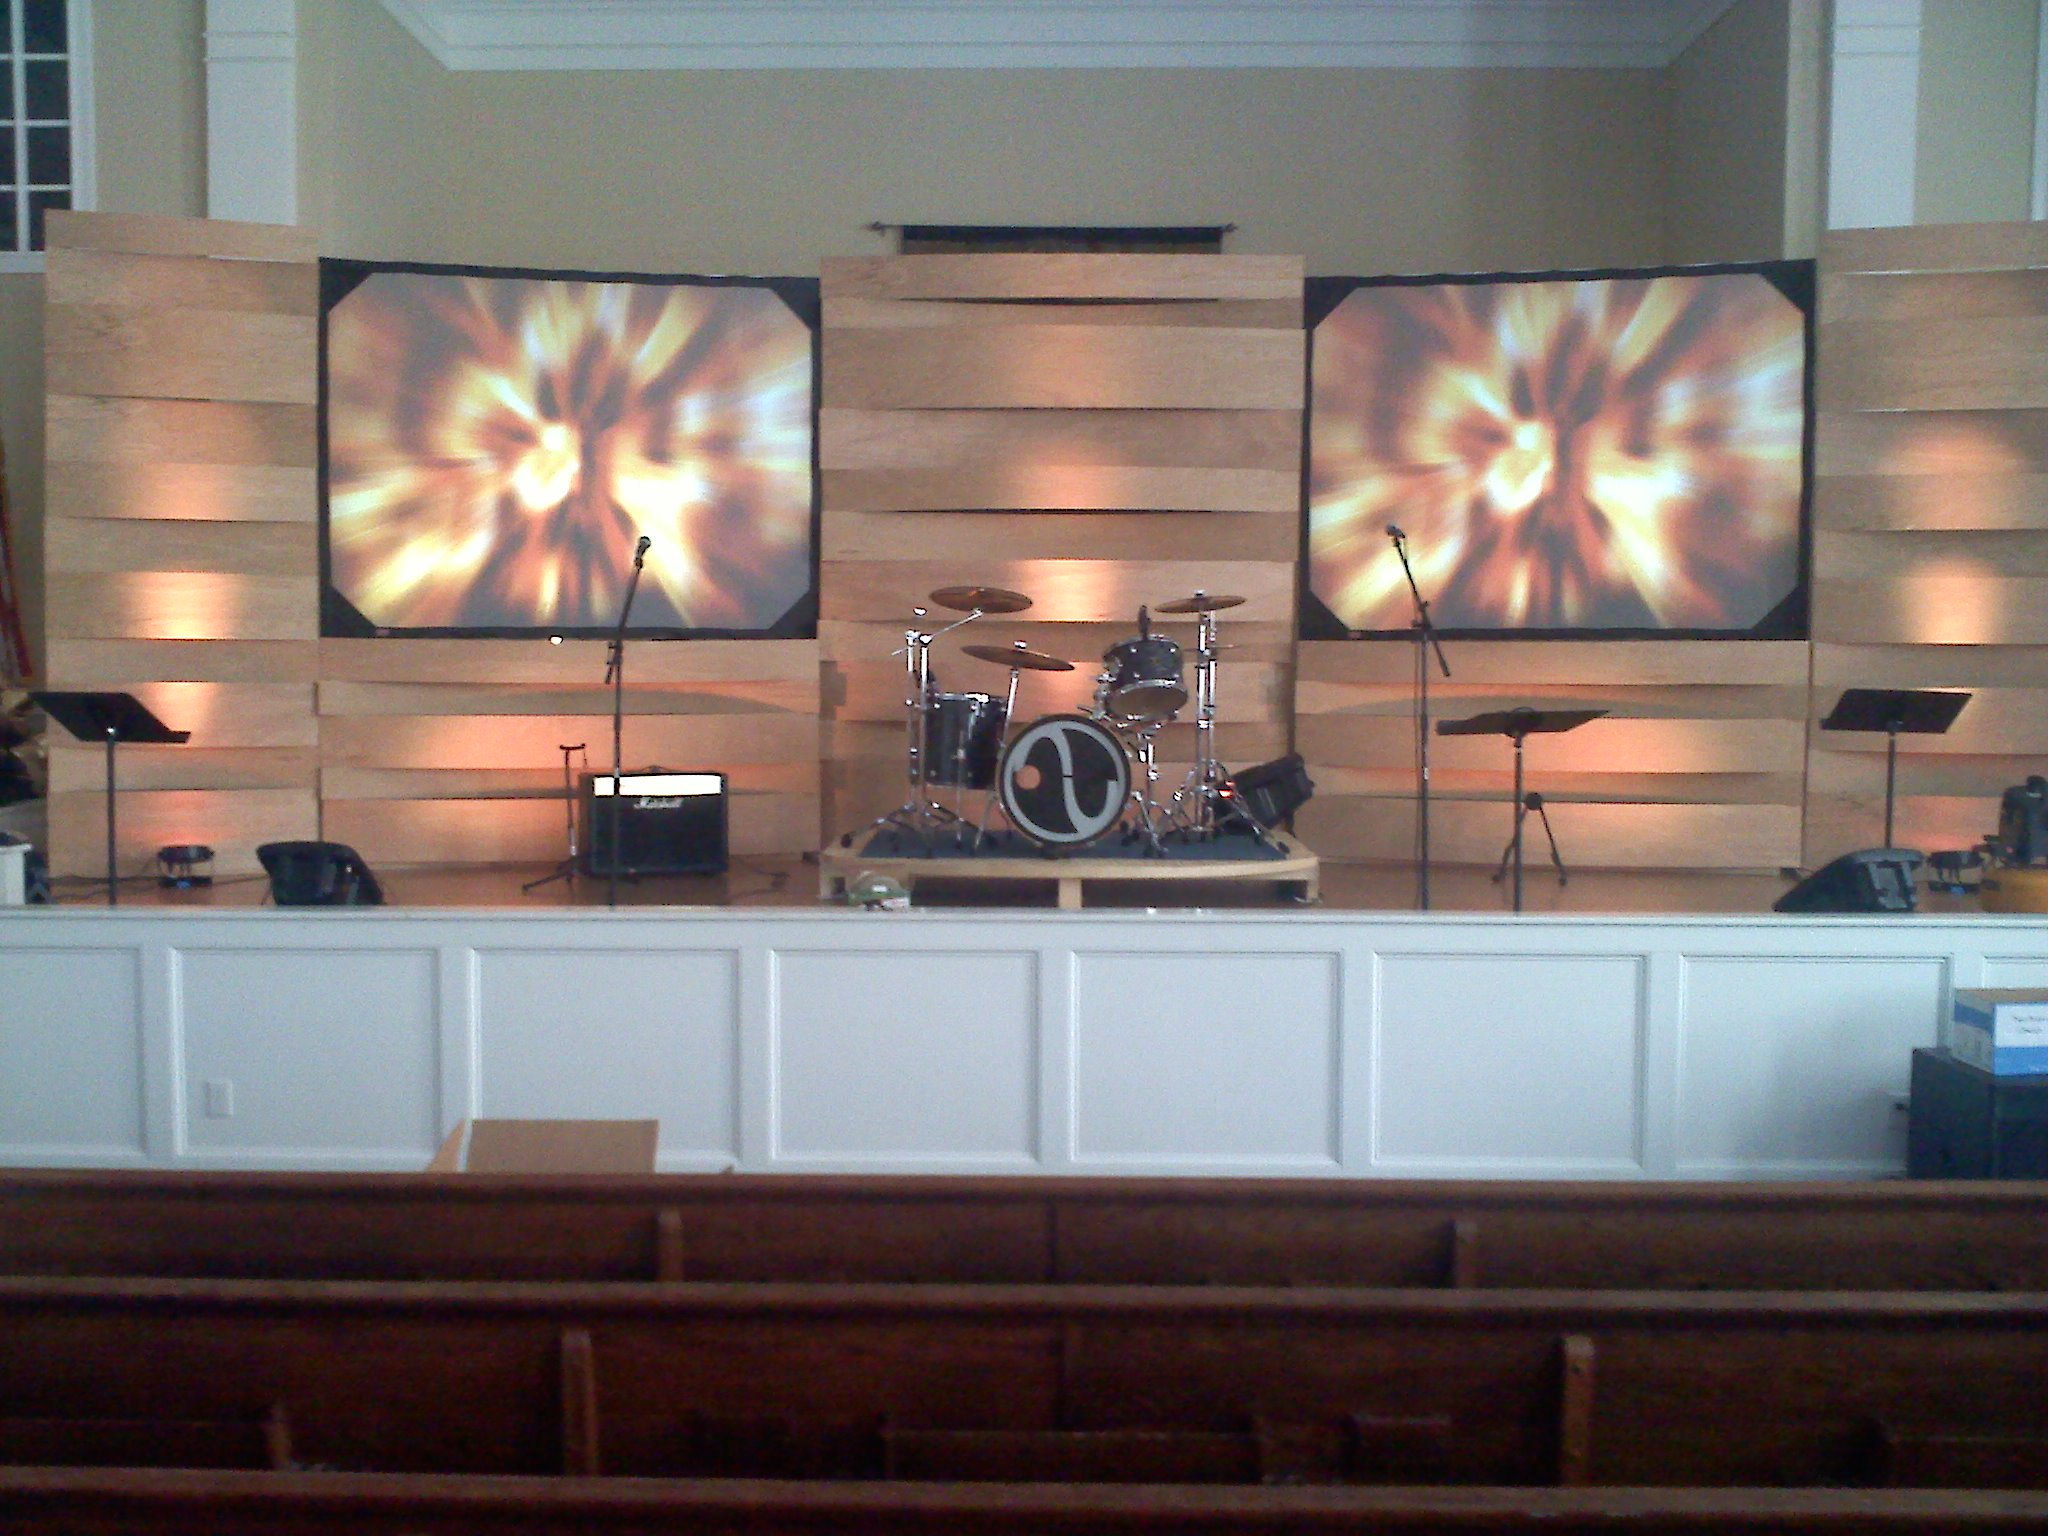 The Wooden Weave Church Stage Design Ideas Scenic Sets And Stage Design Ideas From Churches Around The Globe